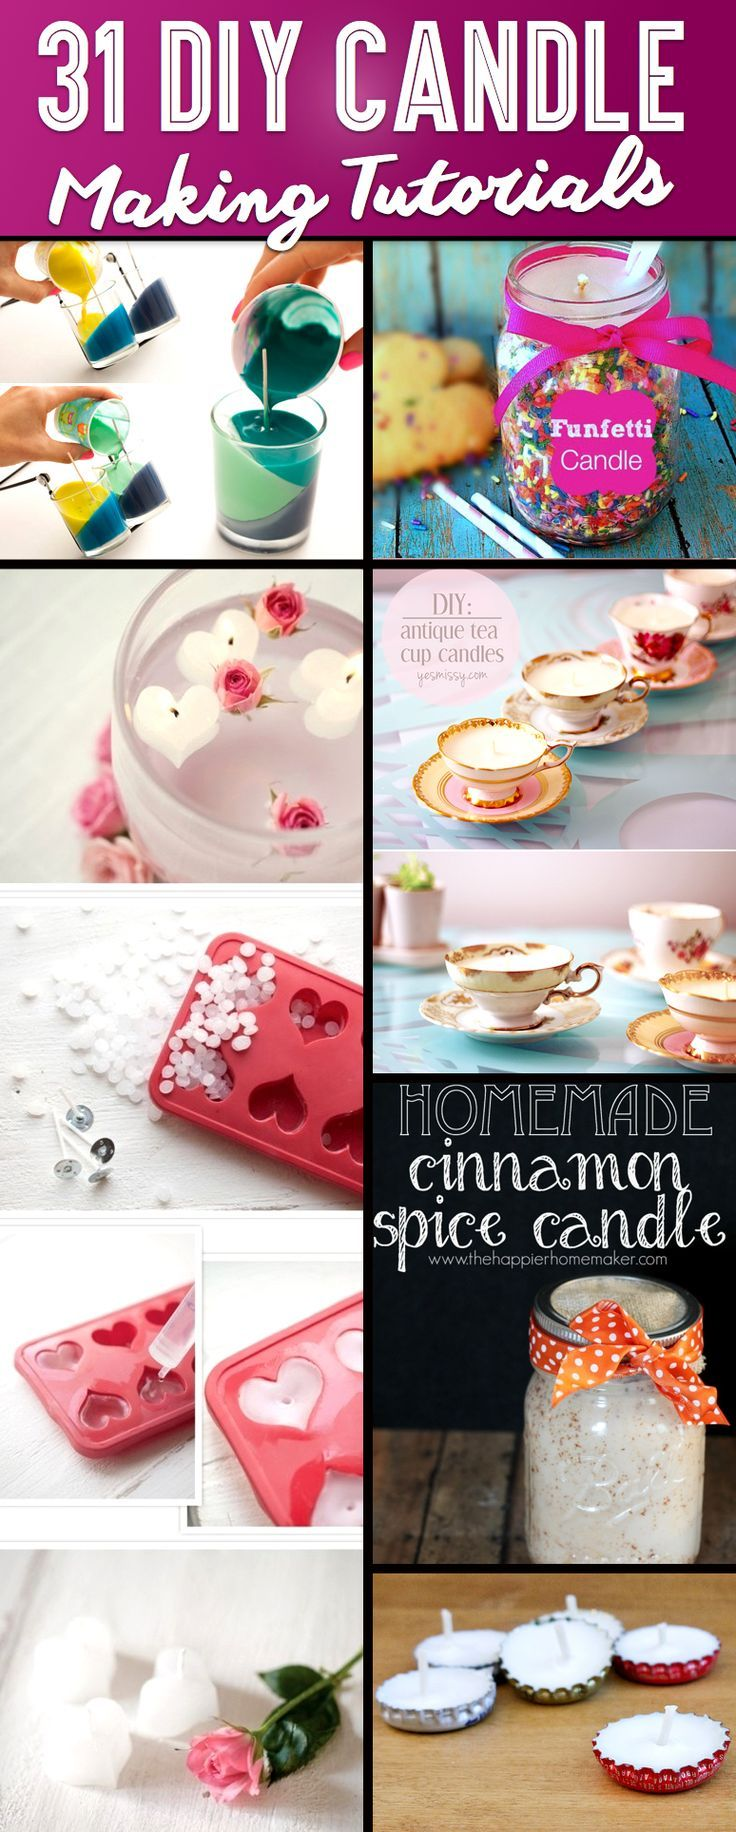 AD-Brilliant-DIY-Candle-Making-and-Decorating-Tutorials-00